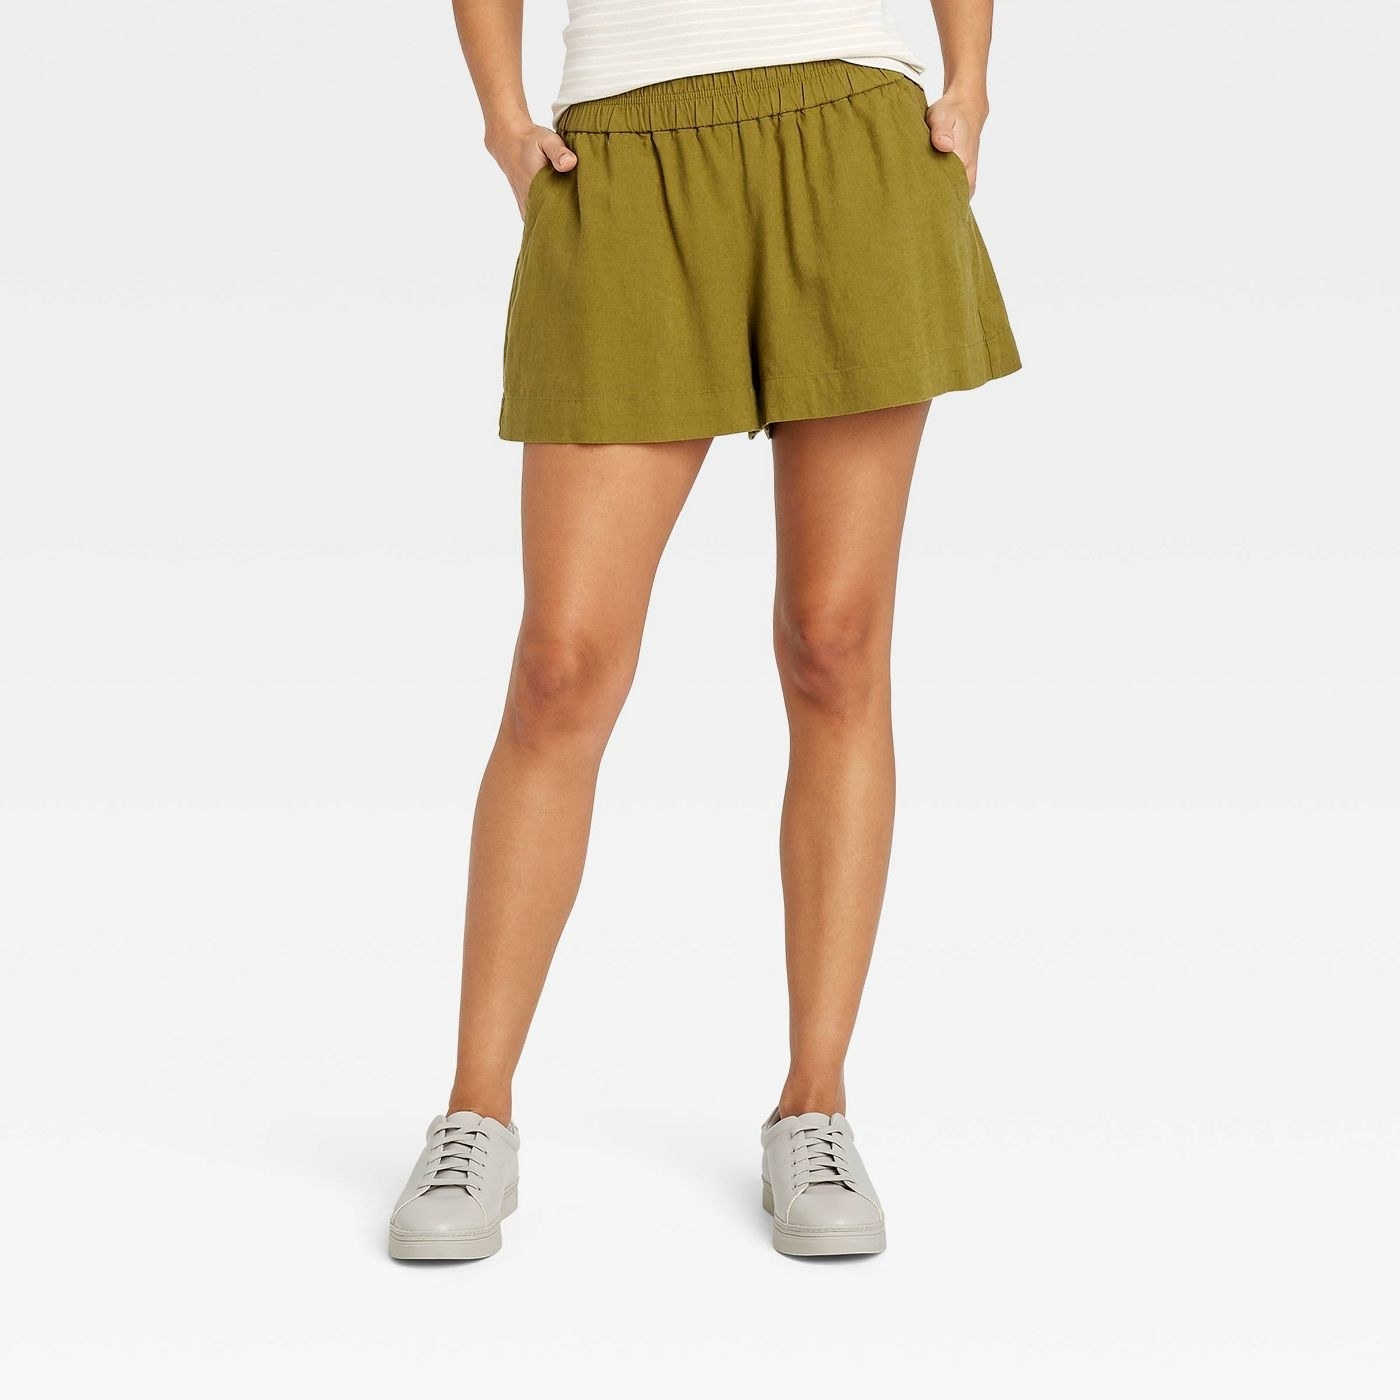 Model wearing green shorts that stop mid thigh